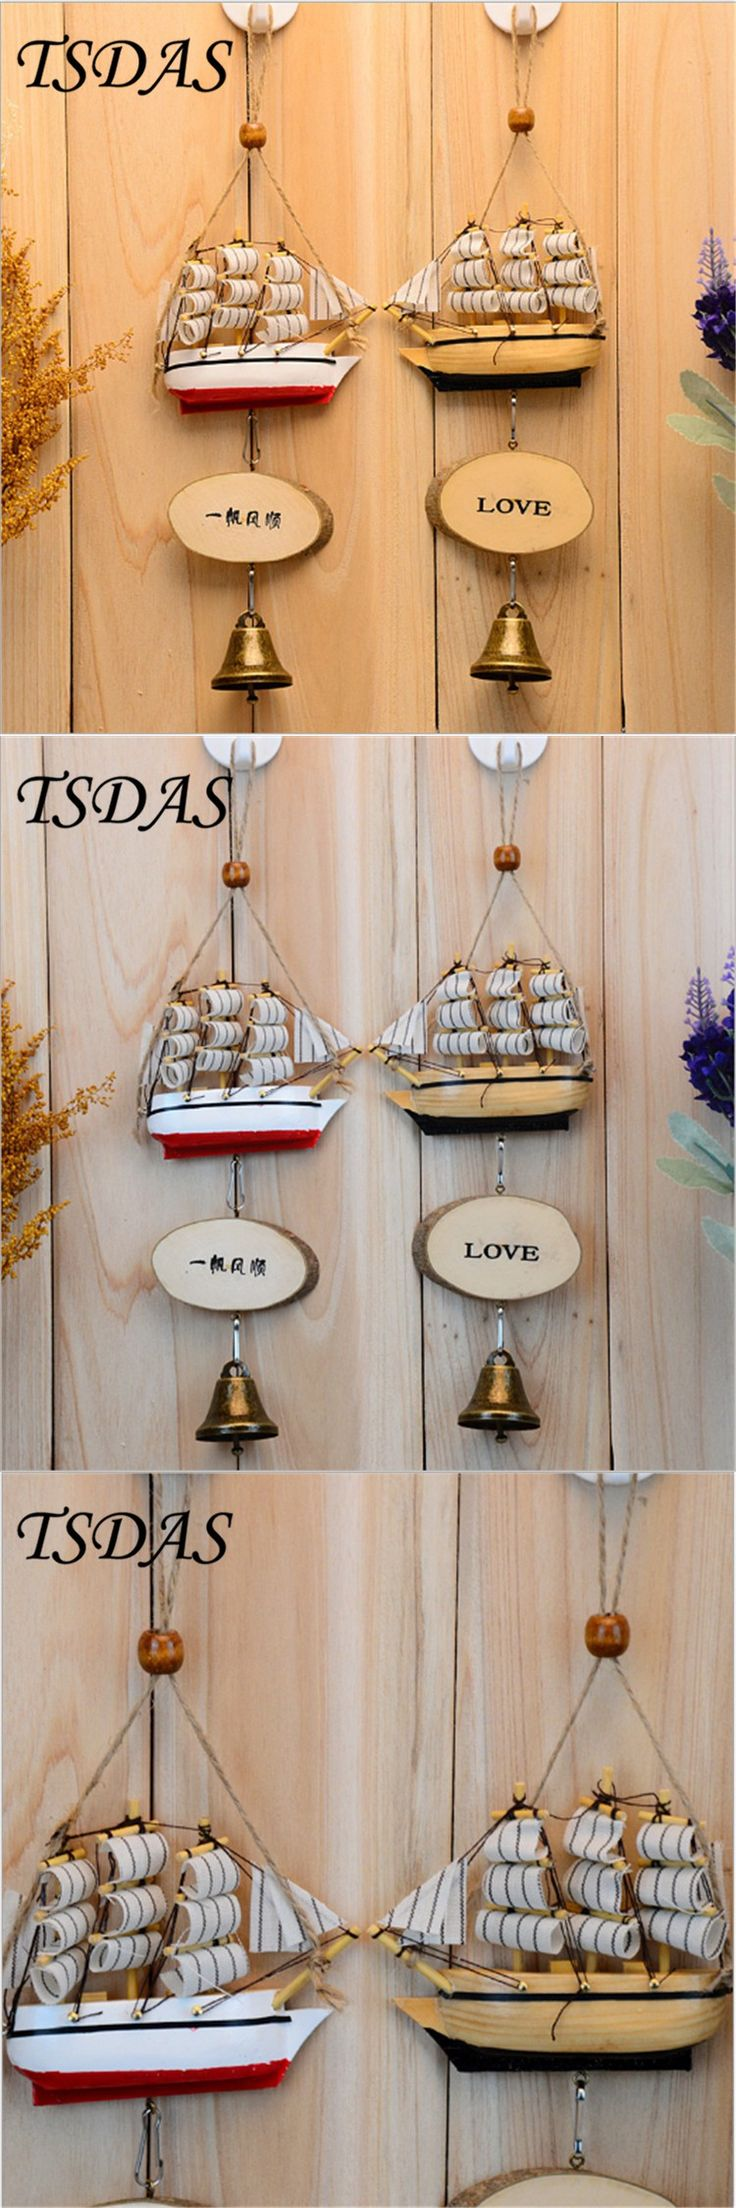 Fancy Wind Chime 1pc Mediterranean Style Nautical Home Decor Creative Wood Sailing Ship Wind Bell Birthday Gift Free Shipping $6